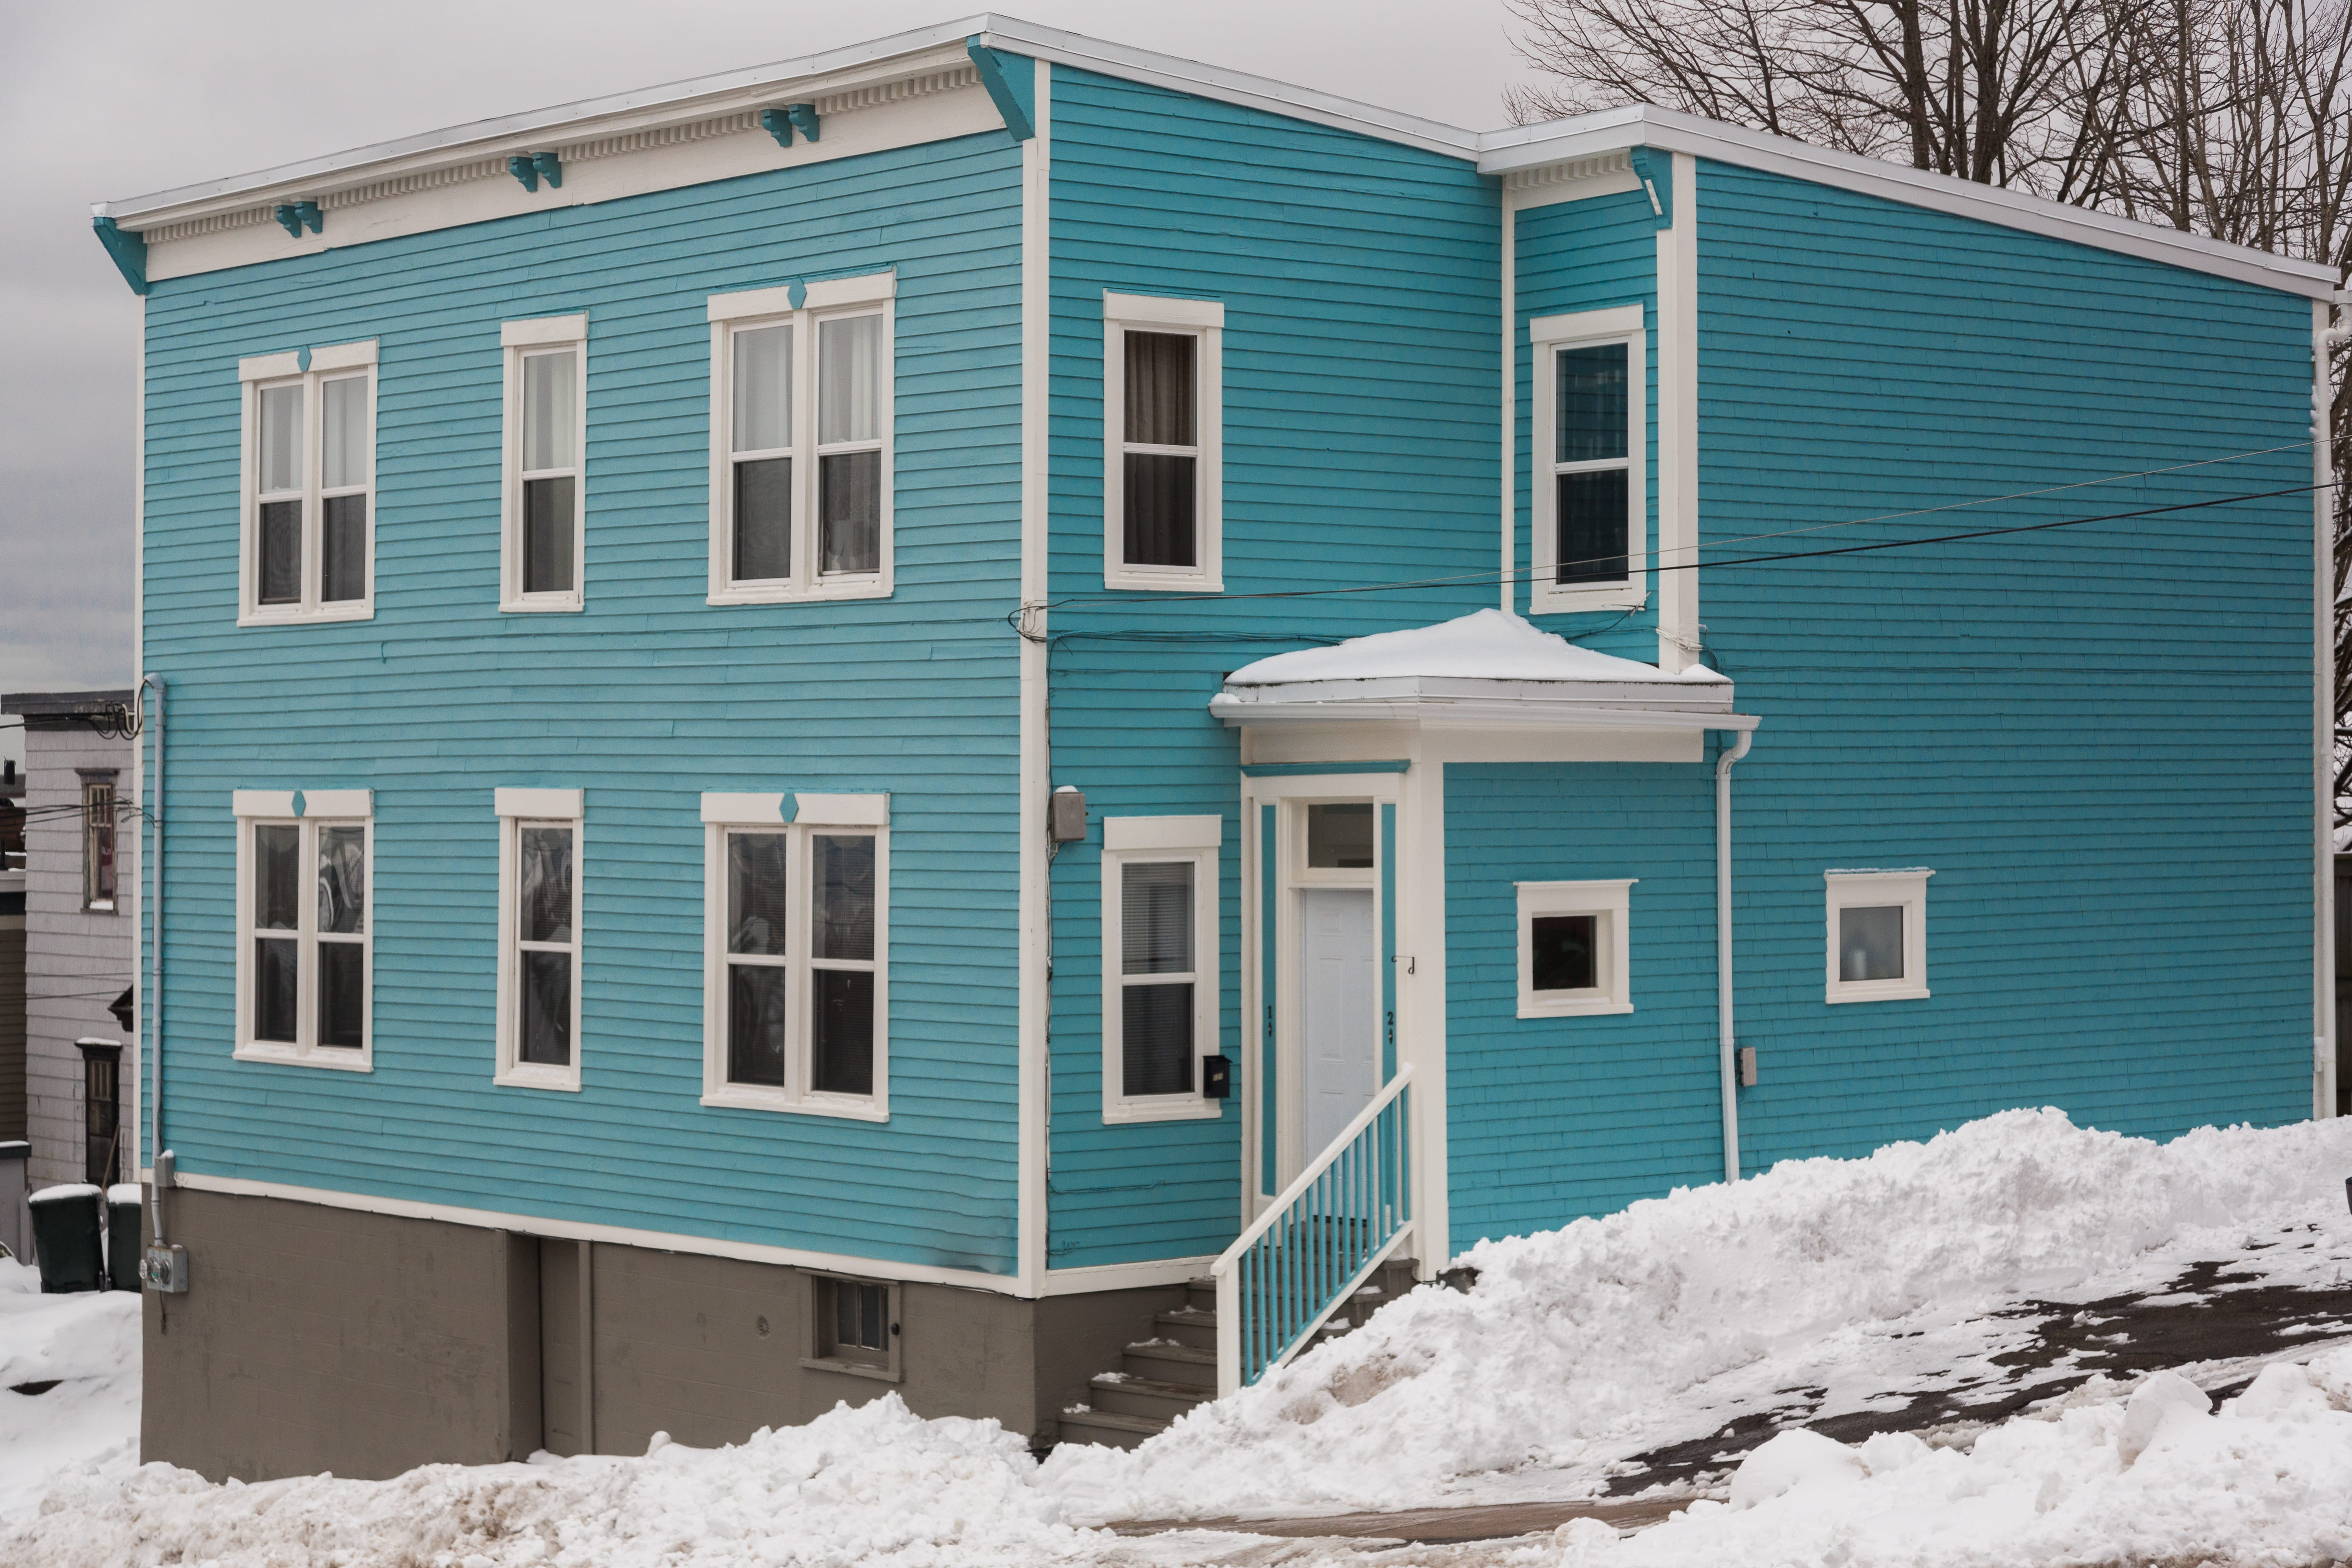 A photograph depicting Old Blue Home in Saint John